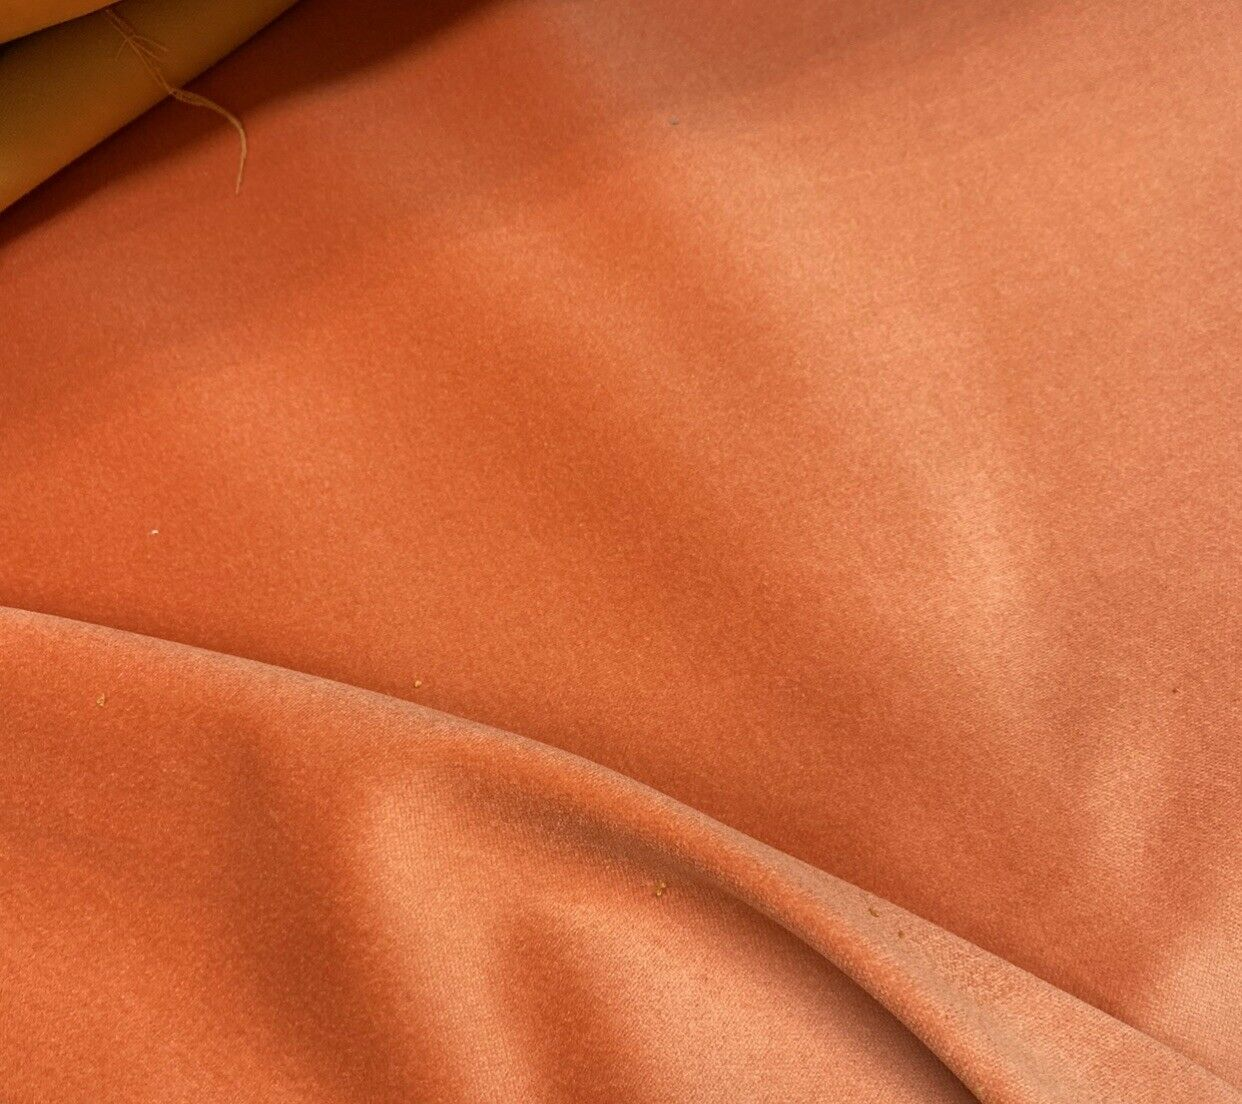 NEW! Prince Fabrielle - Designer Light Weight Cotton Velvet Upholstery Fabric - Soft- Coral Orange BTY